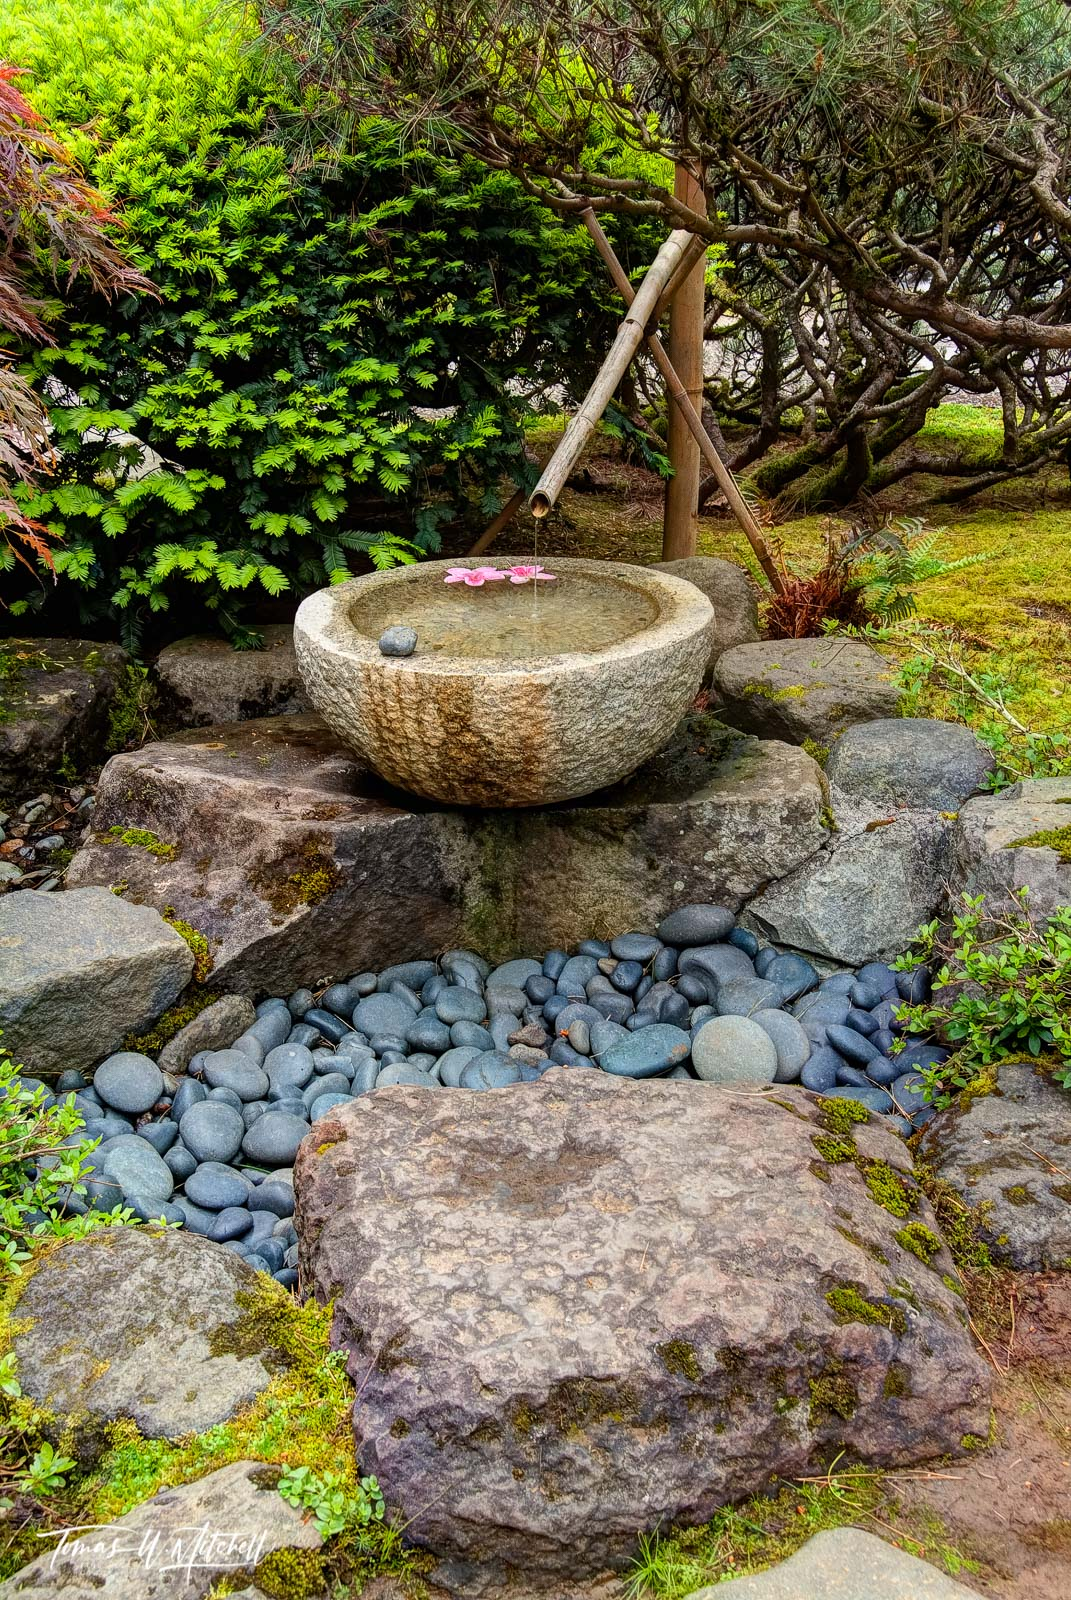 Limited Edition of 50 Museum Grade, Fine Art Prints. The Japanese Garden at Portland Oregon is a magical place full of serenity...